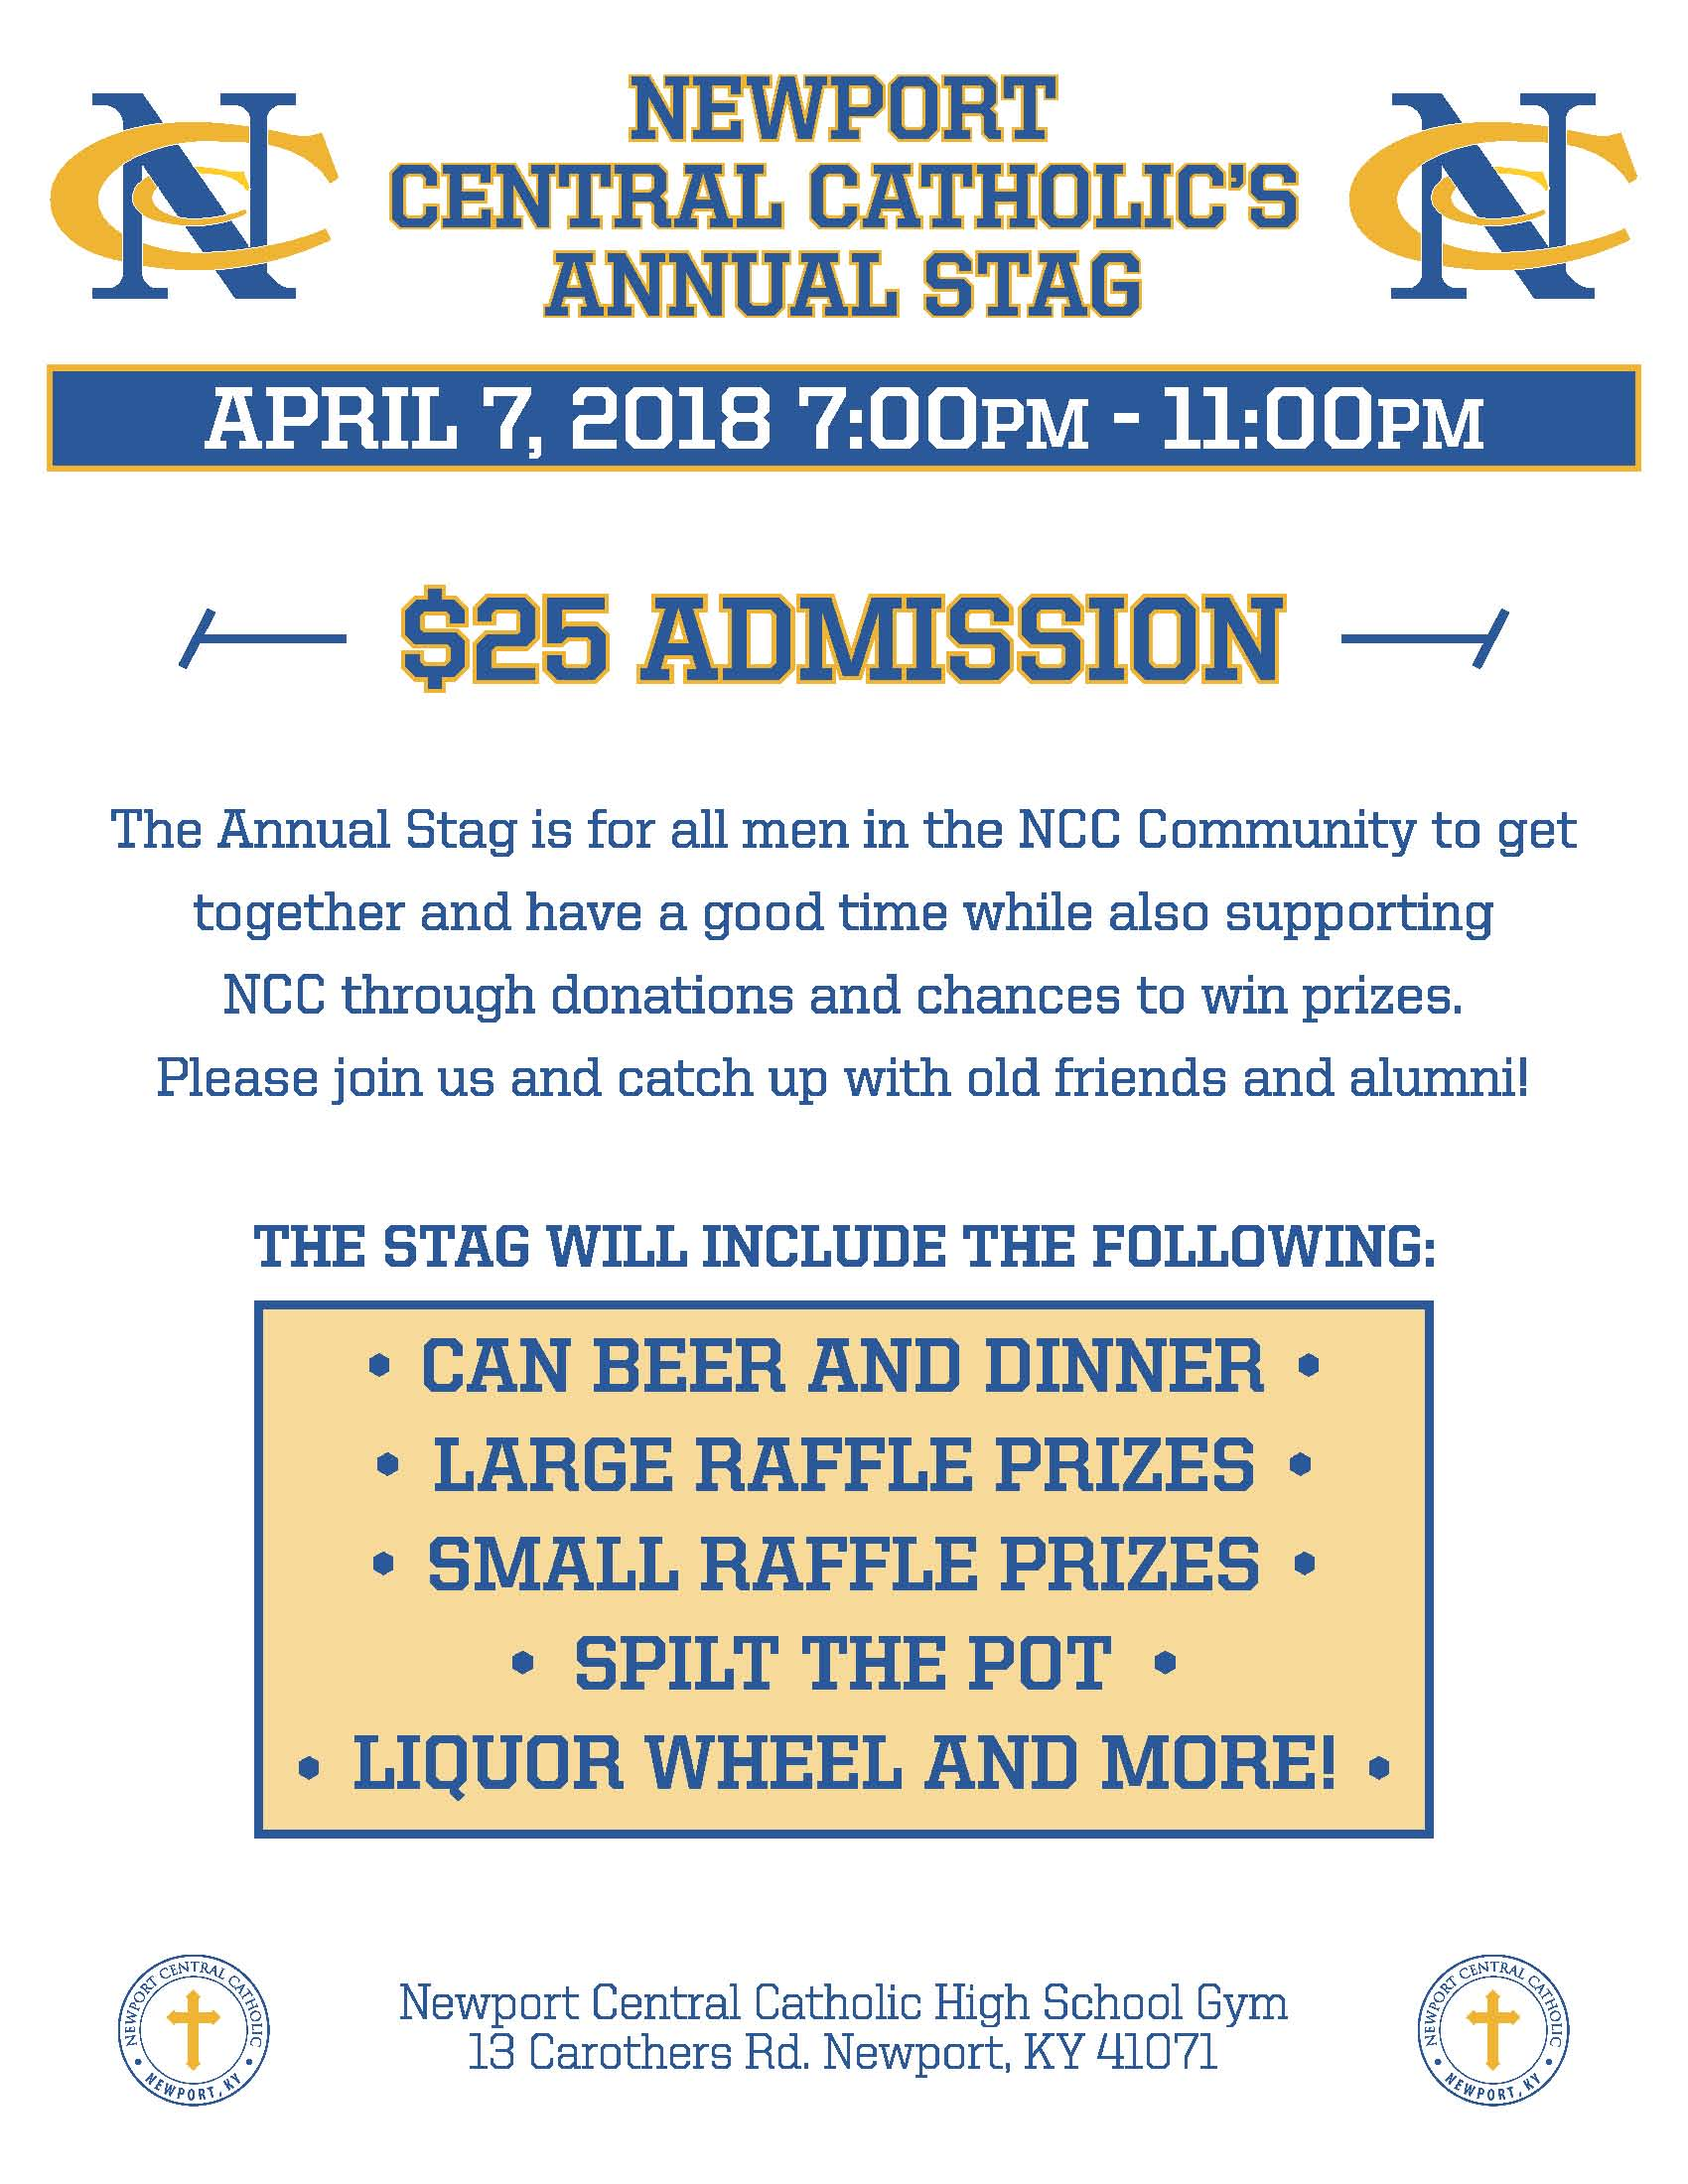 NewCath Stag Flyer - 2018 (1).jpg